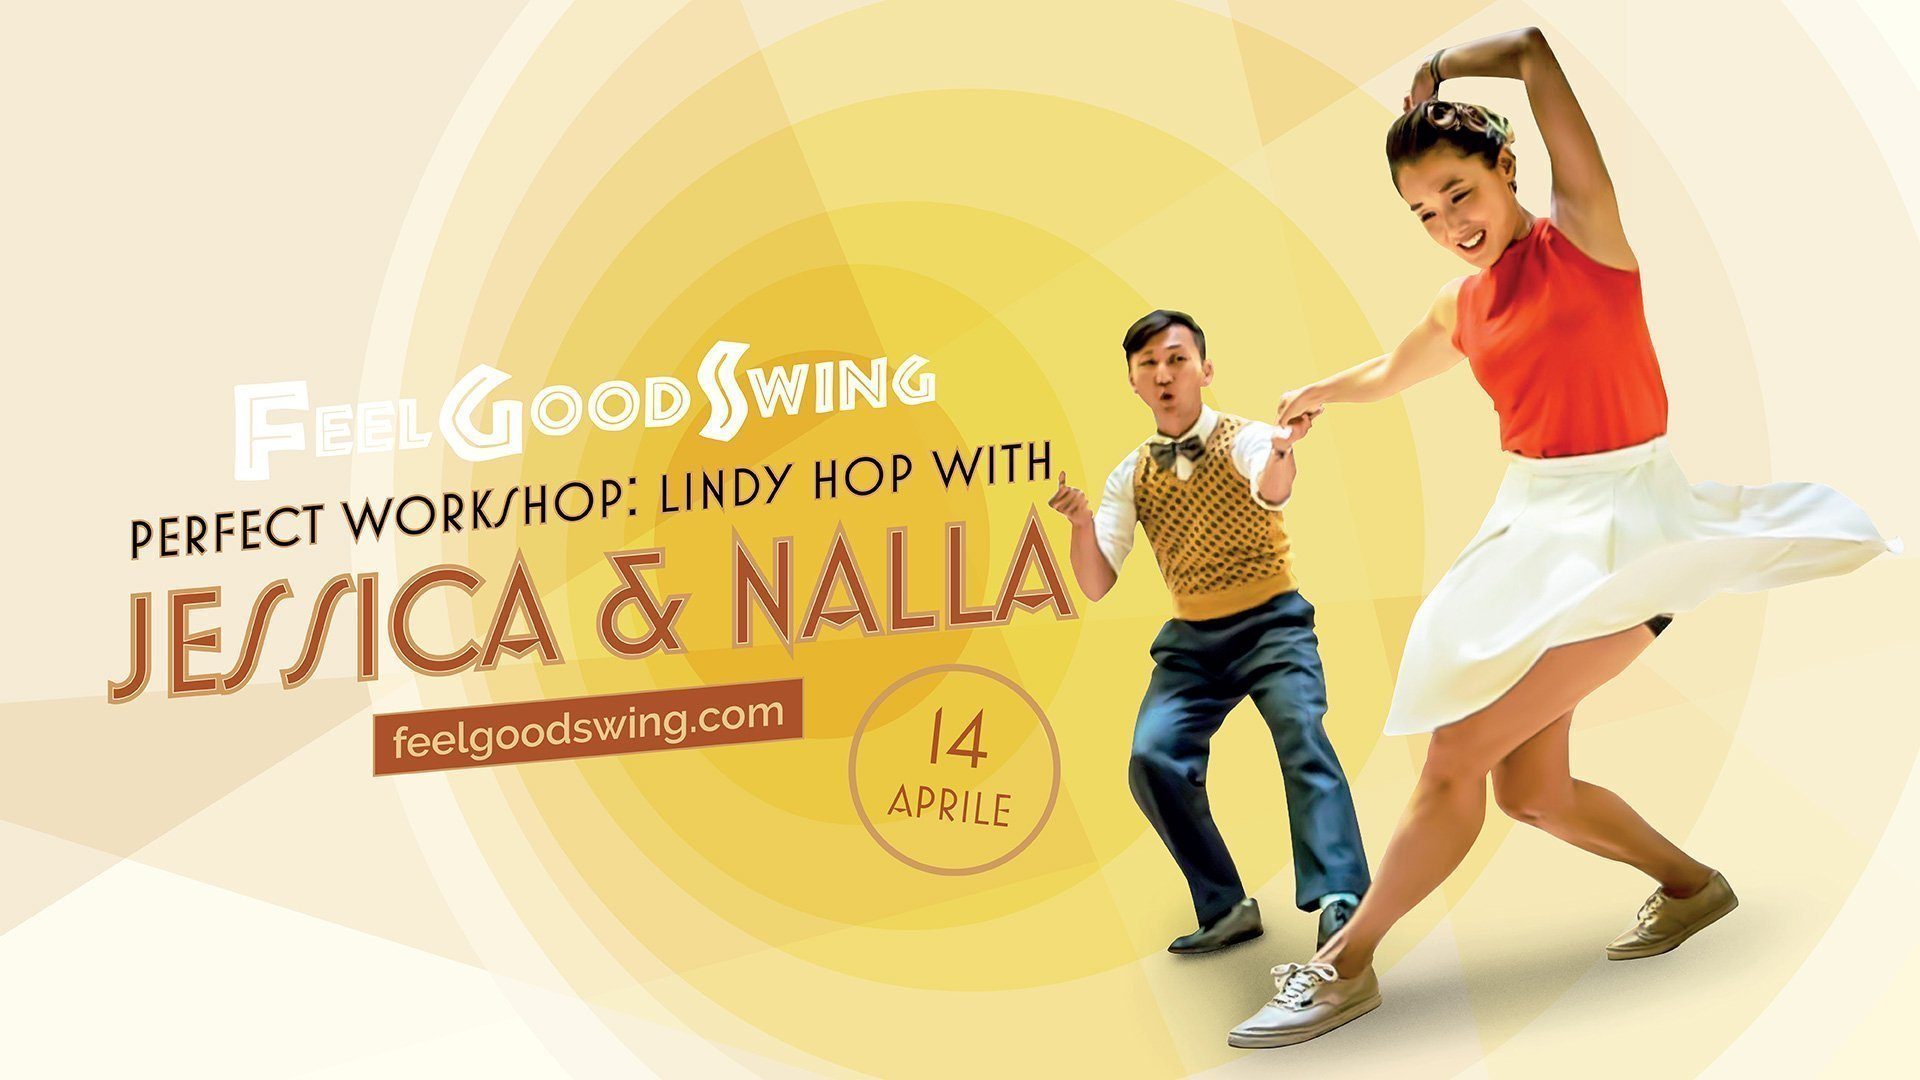 Lindy Hop Workshop - Jessica e Nalla dalla Corea